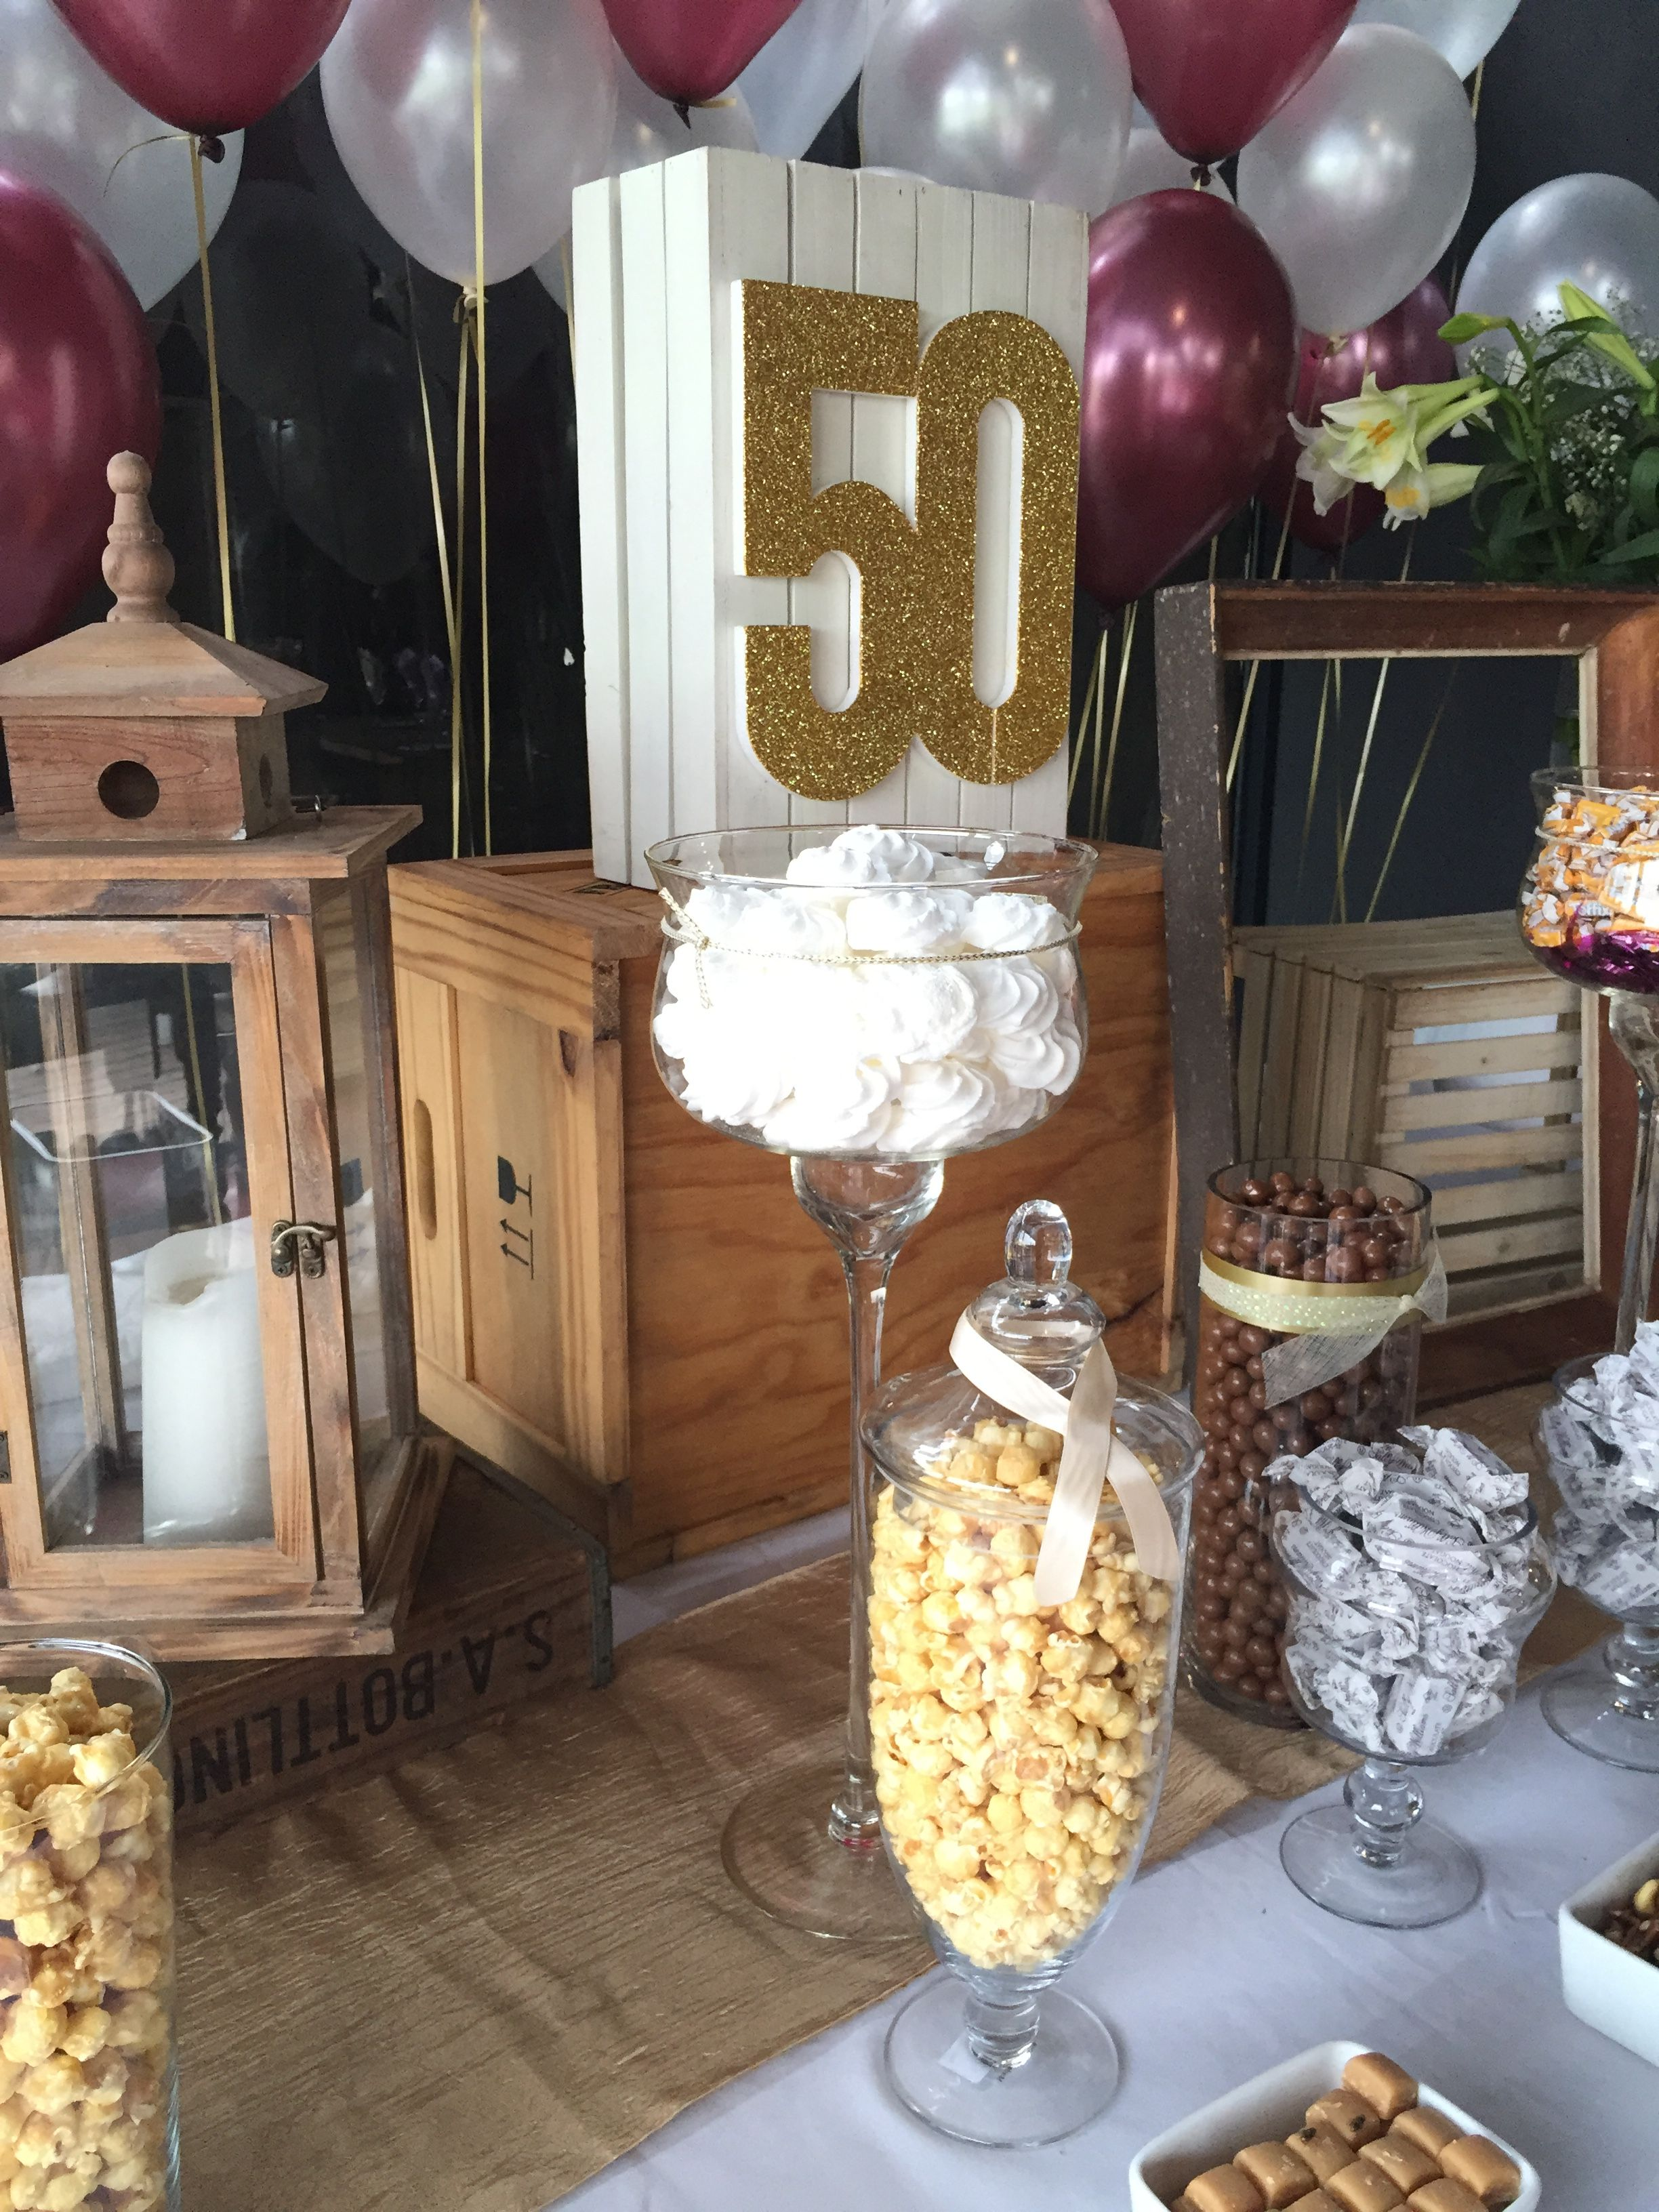 Wine Red Gold Rose Gold 50th Birthday Celebrations Decor Rustic Chic Candy Table Wine Decor Decor Chic Birthday